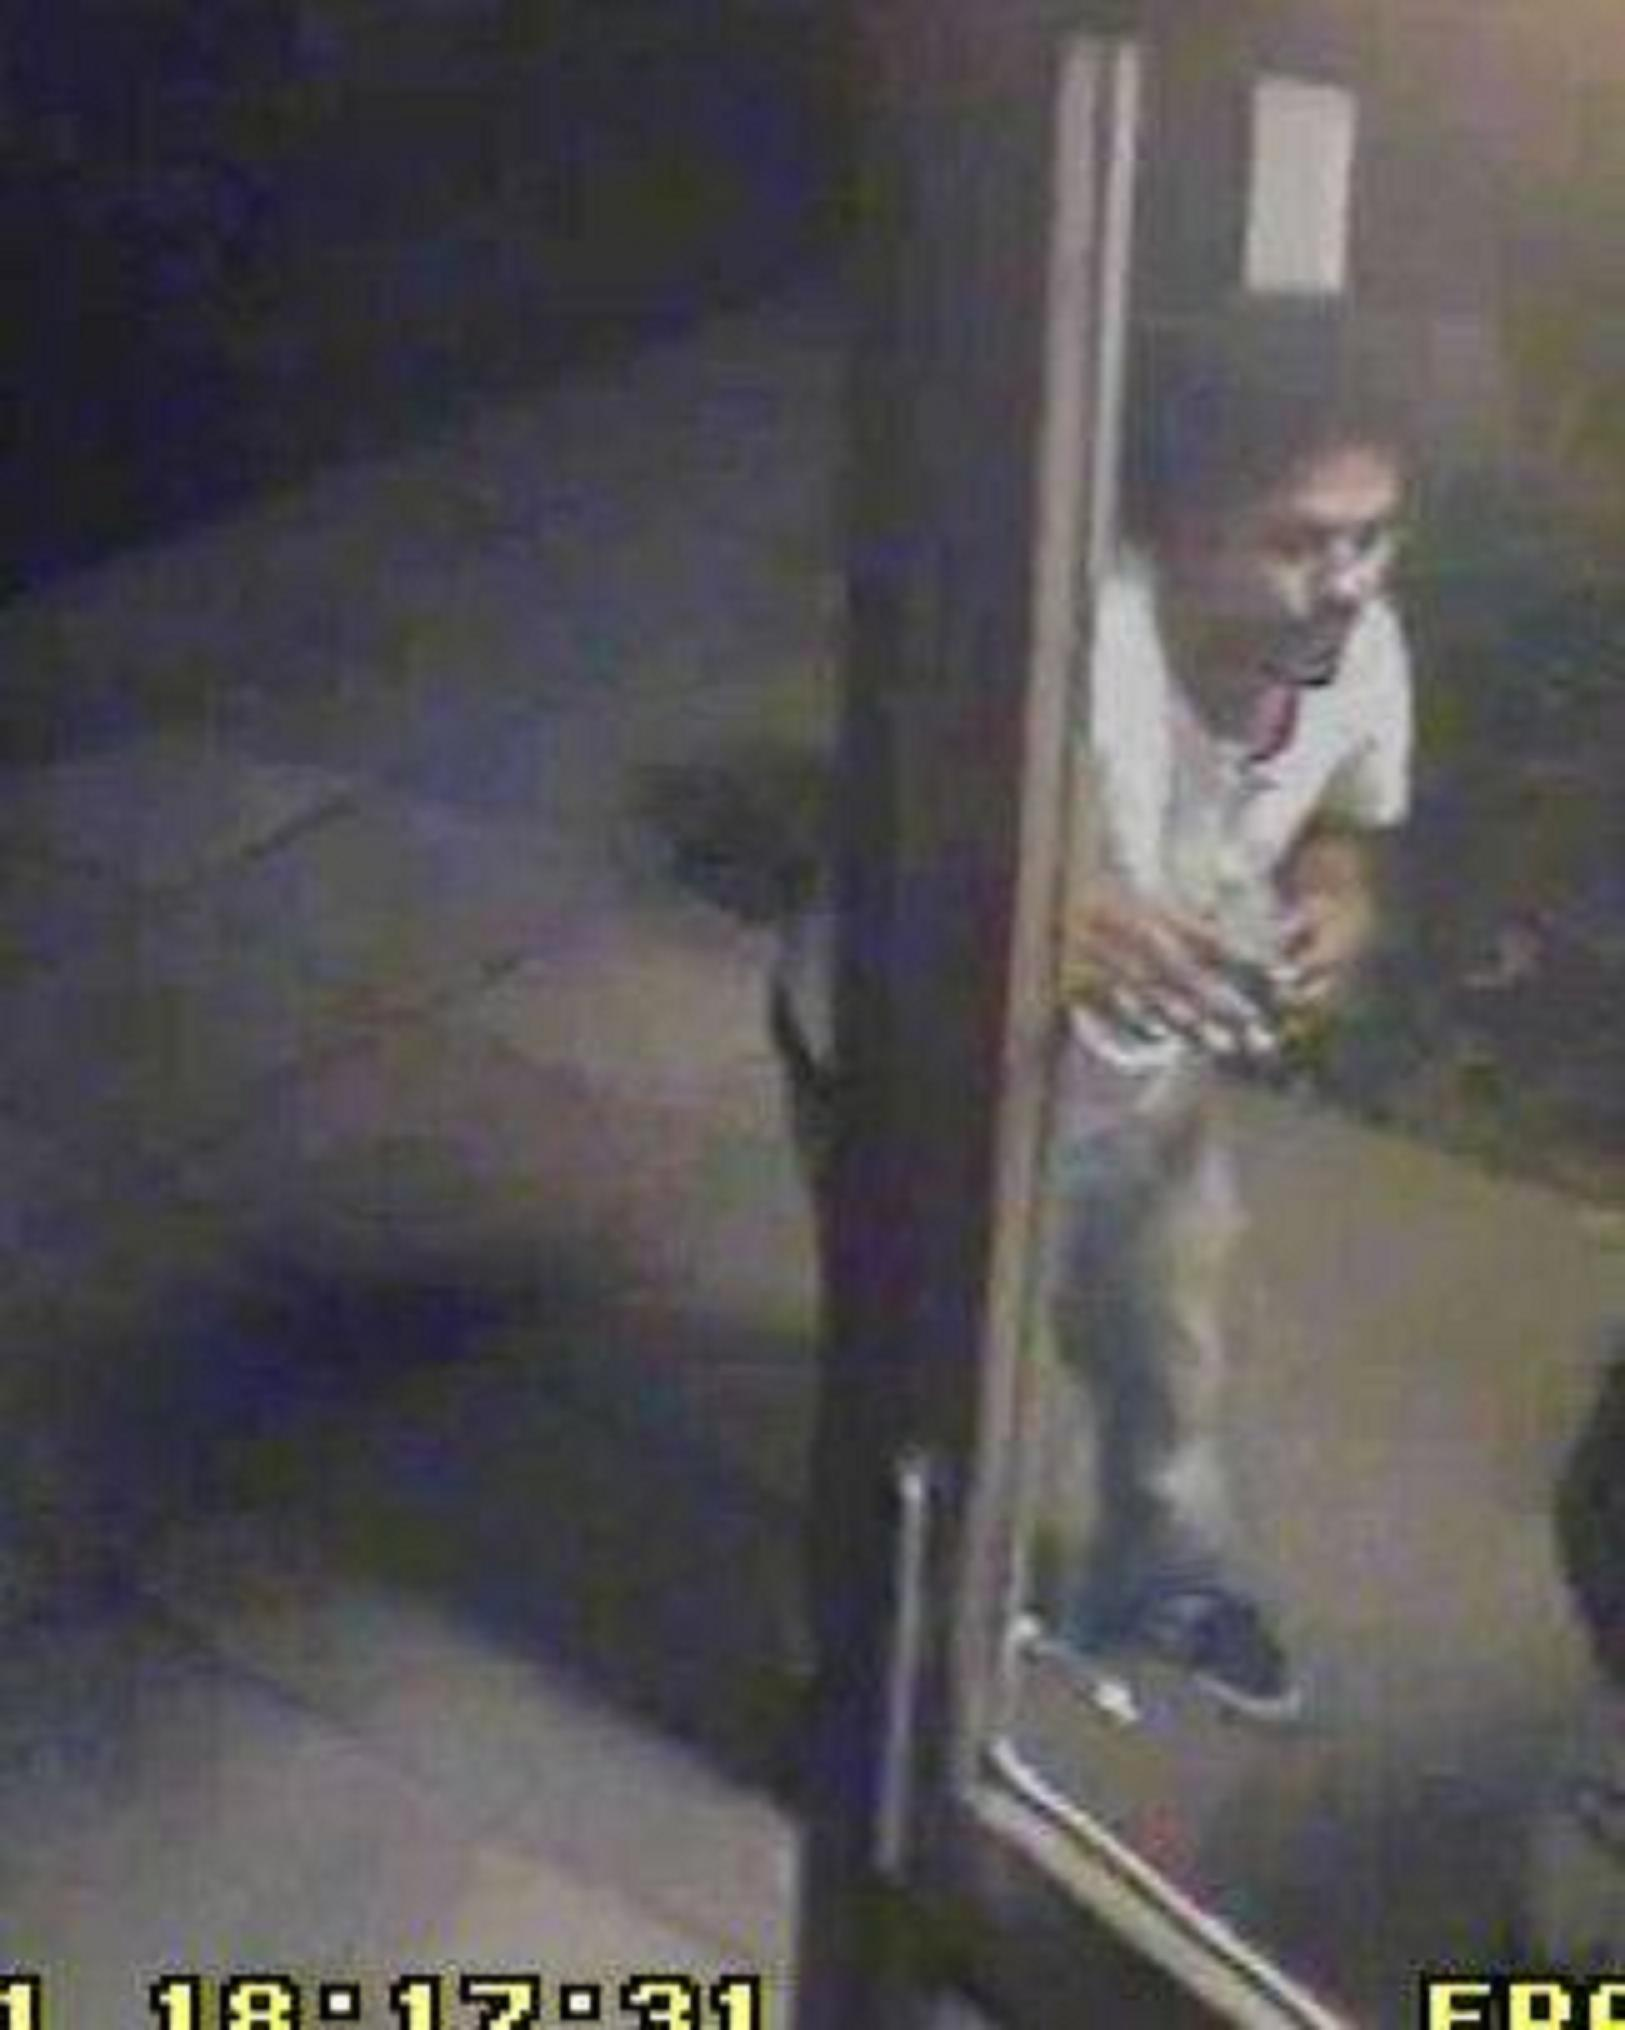 Your Local Guardian: A cctv image of the suspect